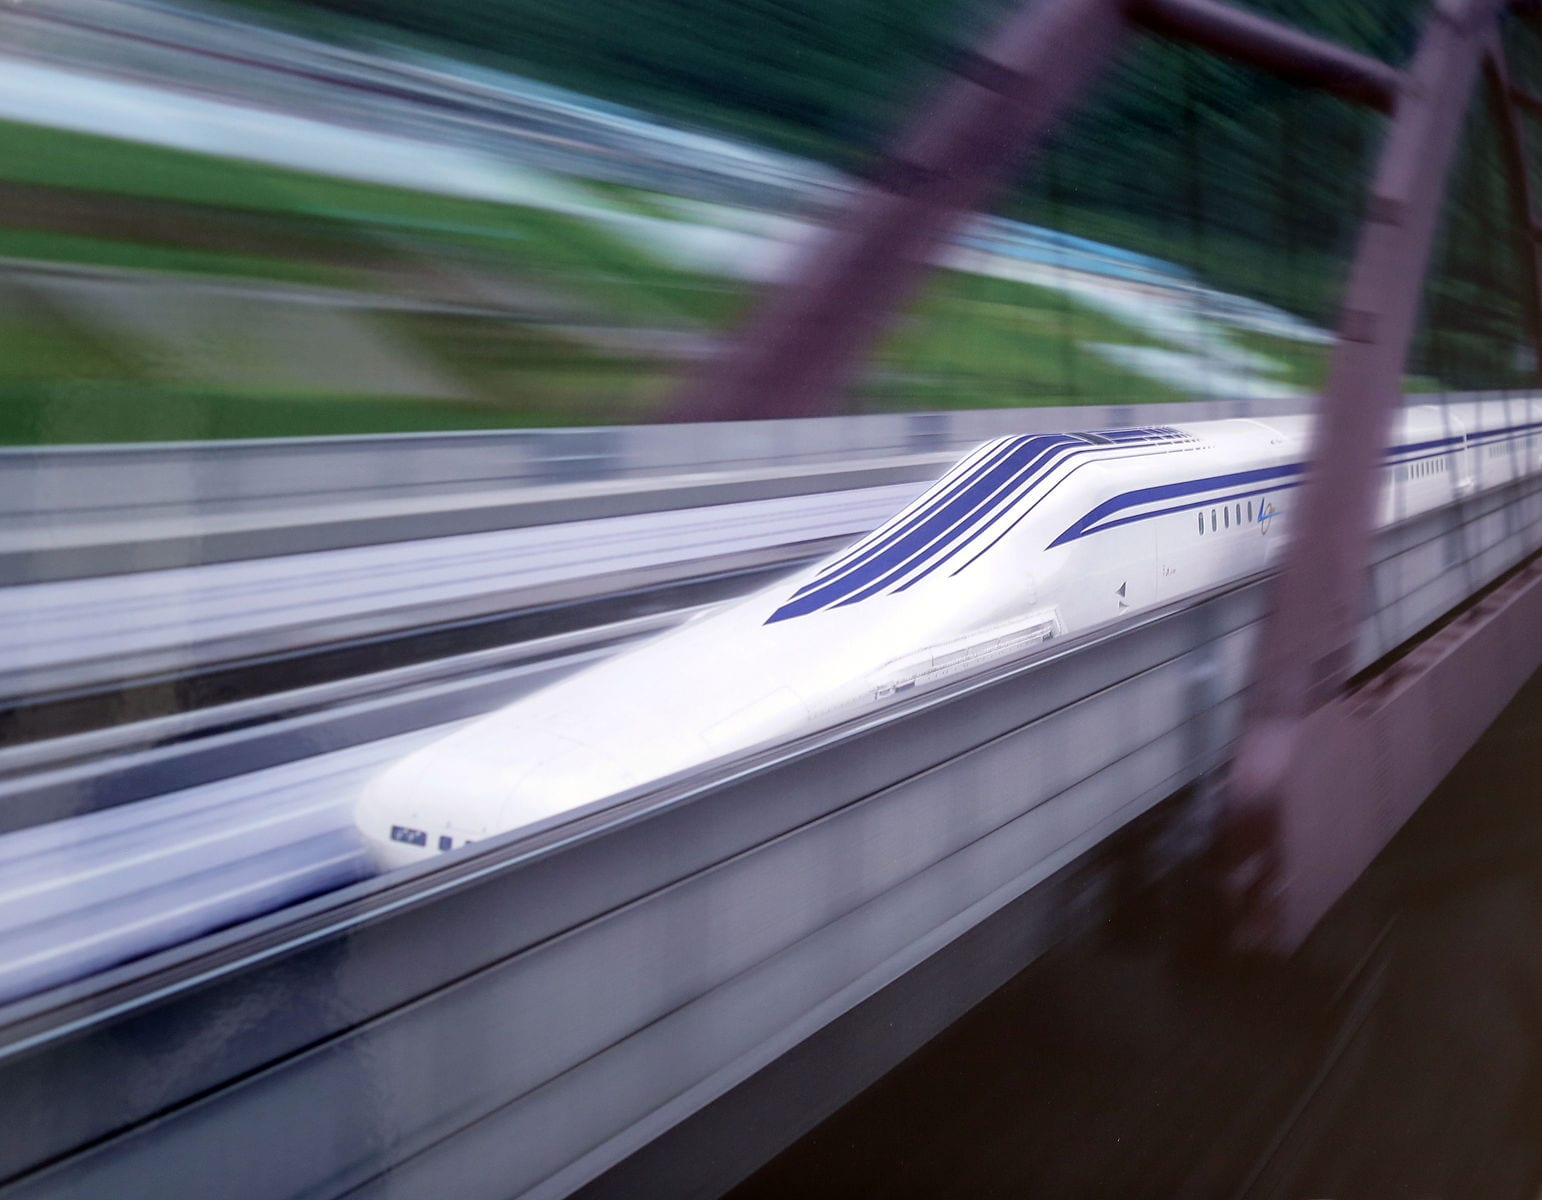 fastest trains